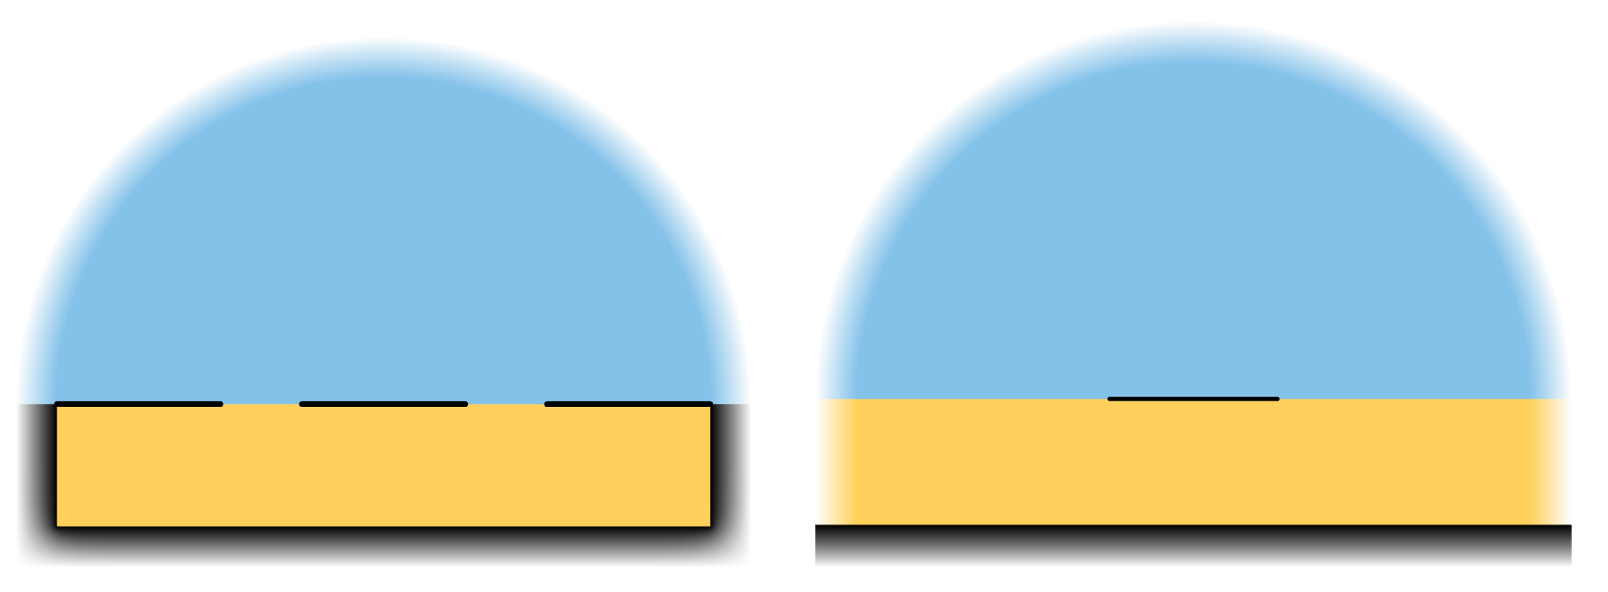 Two side-by-side illustrations showing conductors modeled as surfaces with zero thickness.